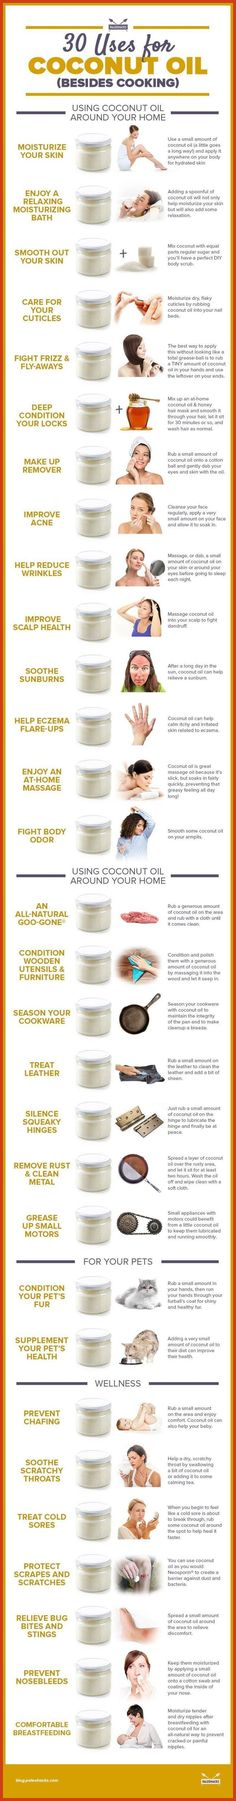 Use Coconut Oil Health - aceite de coco - 9 Reasons to Use Coconut Oil Daily Coconut Oil Will Set You Free — and Improve Your Health!Coconut Oil Fuels Your Metabolism! Beauty Care, Diy Beauty, Beauty Hacks, Pure Beauty, Natural Beauty, Organic Beauty, Beauty Ideas, Beauty Makeup, Tips Belleza